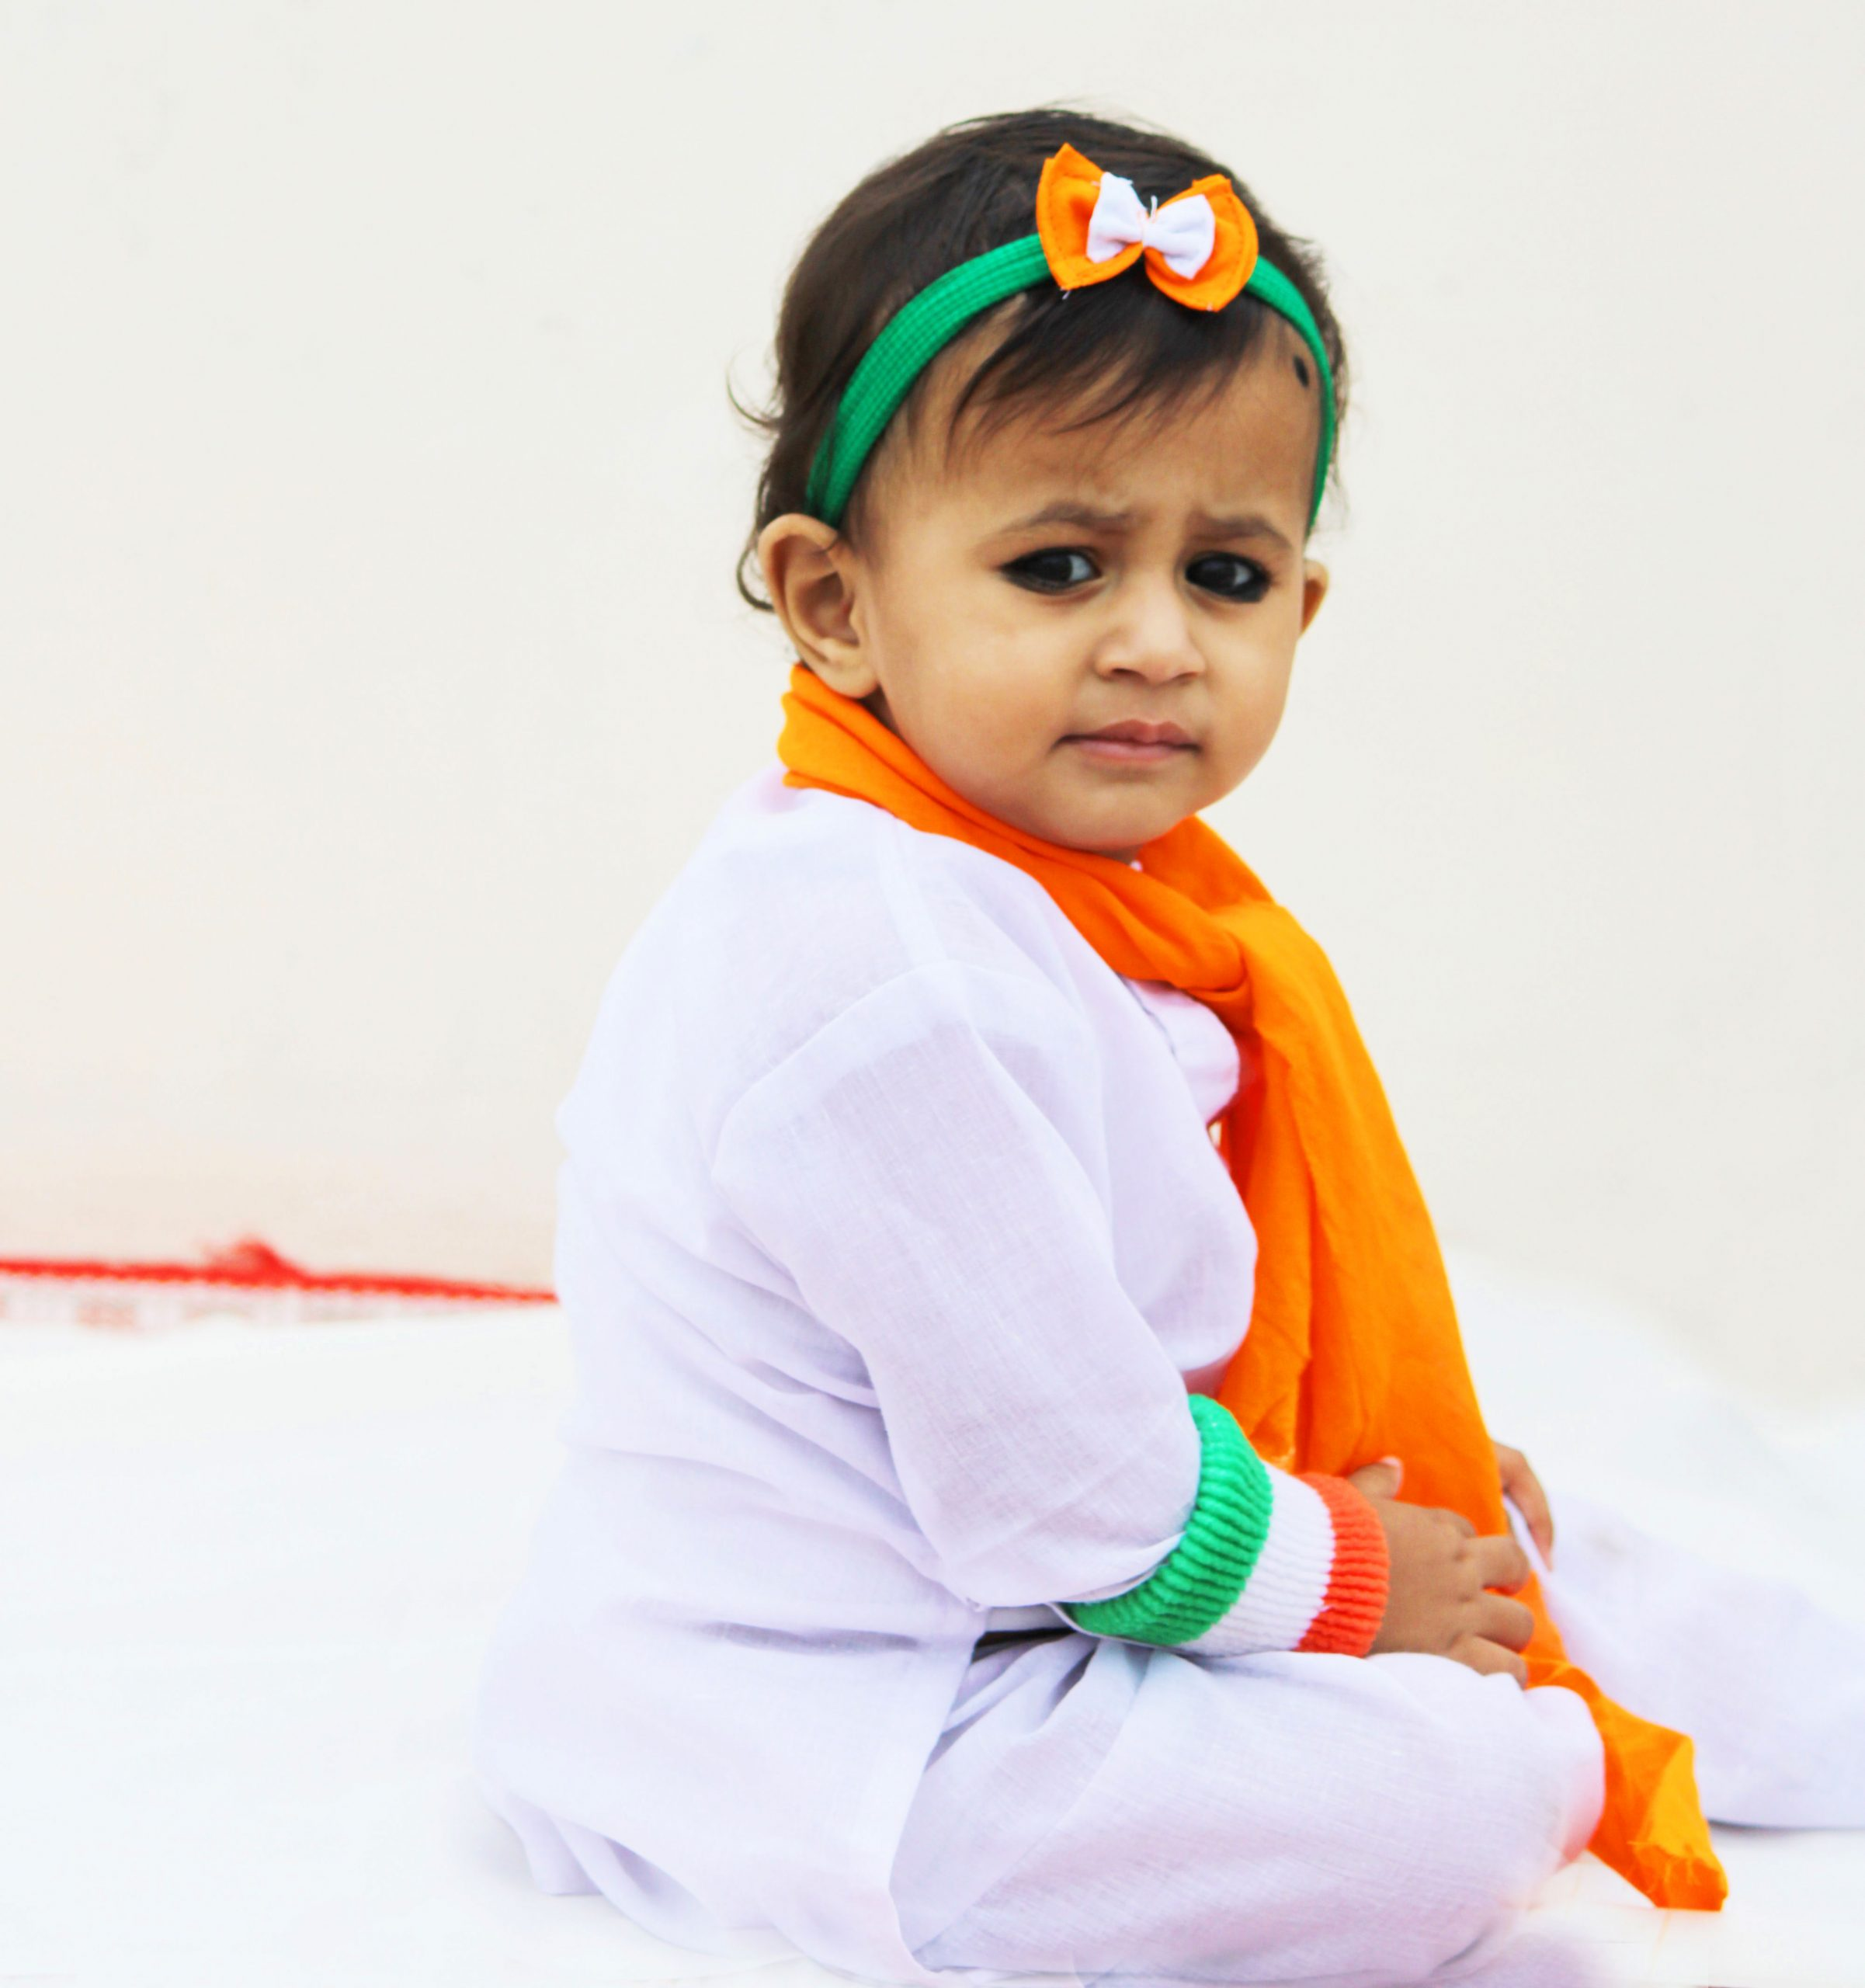 New Stylish Baby Boy Whatsapp Dp Images wallpaper for 2021